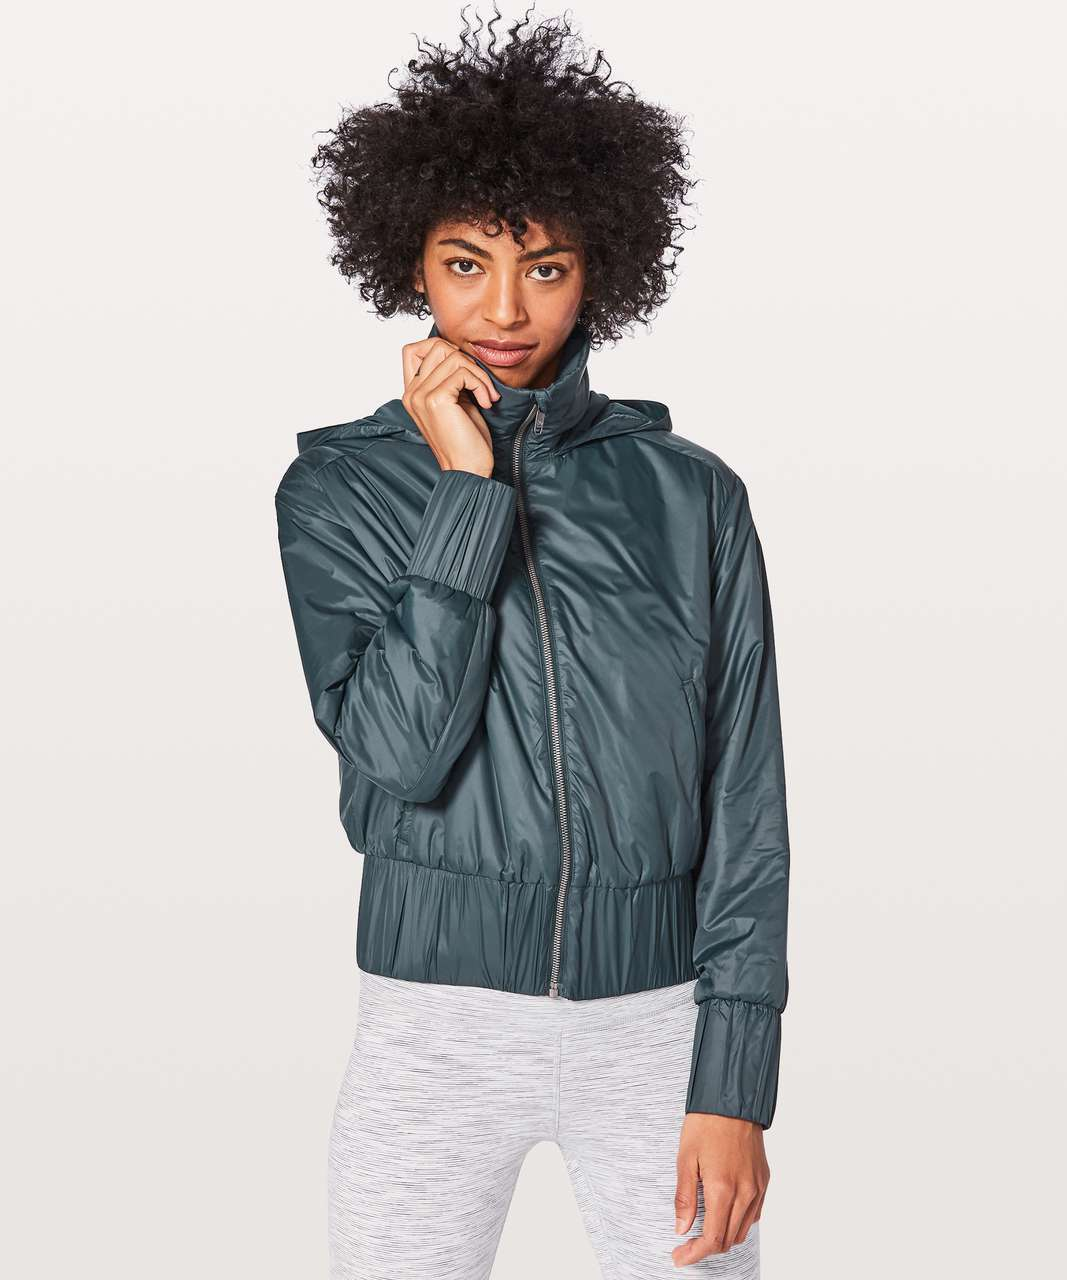 Lululemon Gather & Go Jacket - Nocturnal Teal